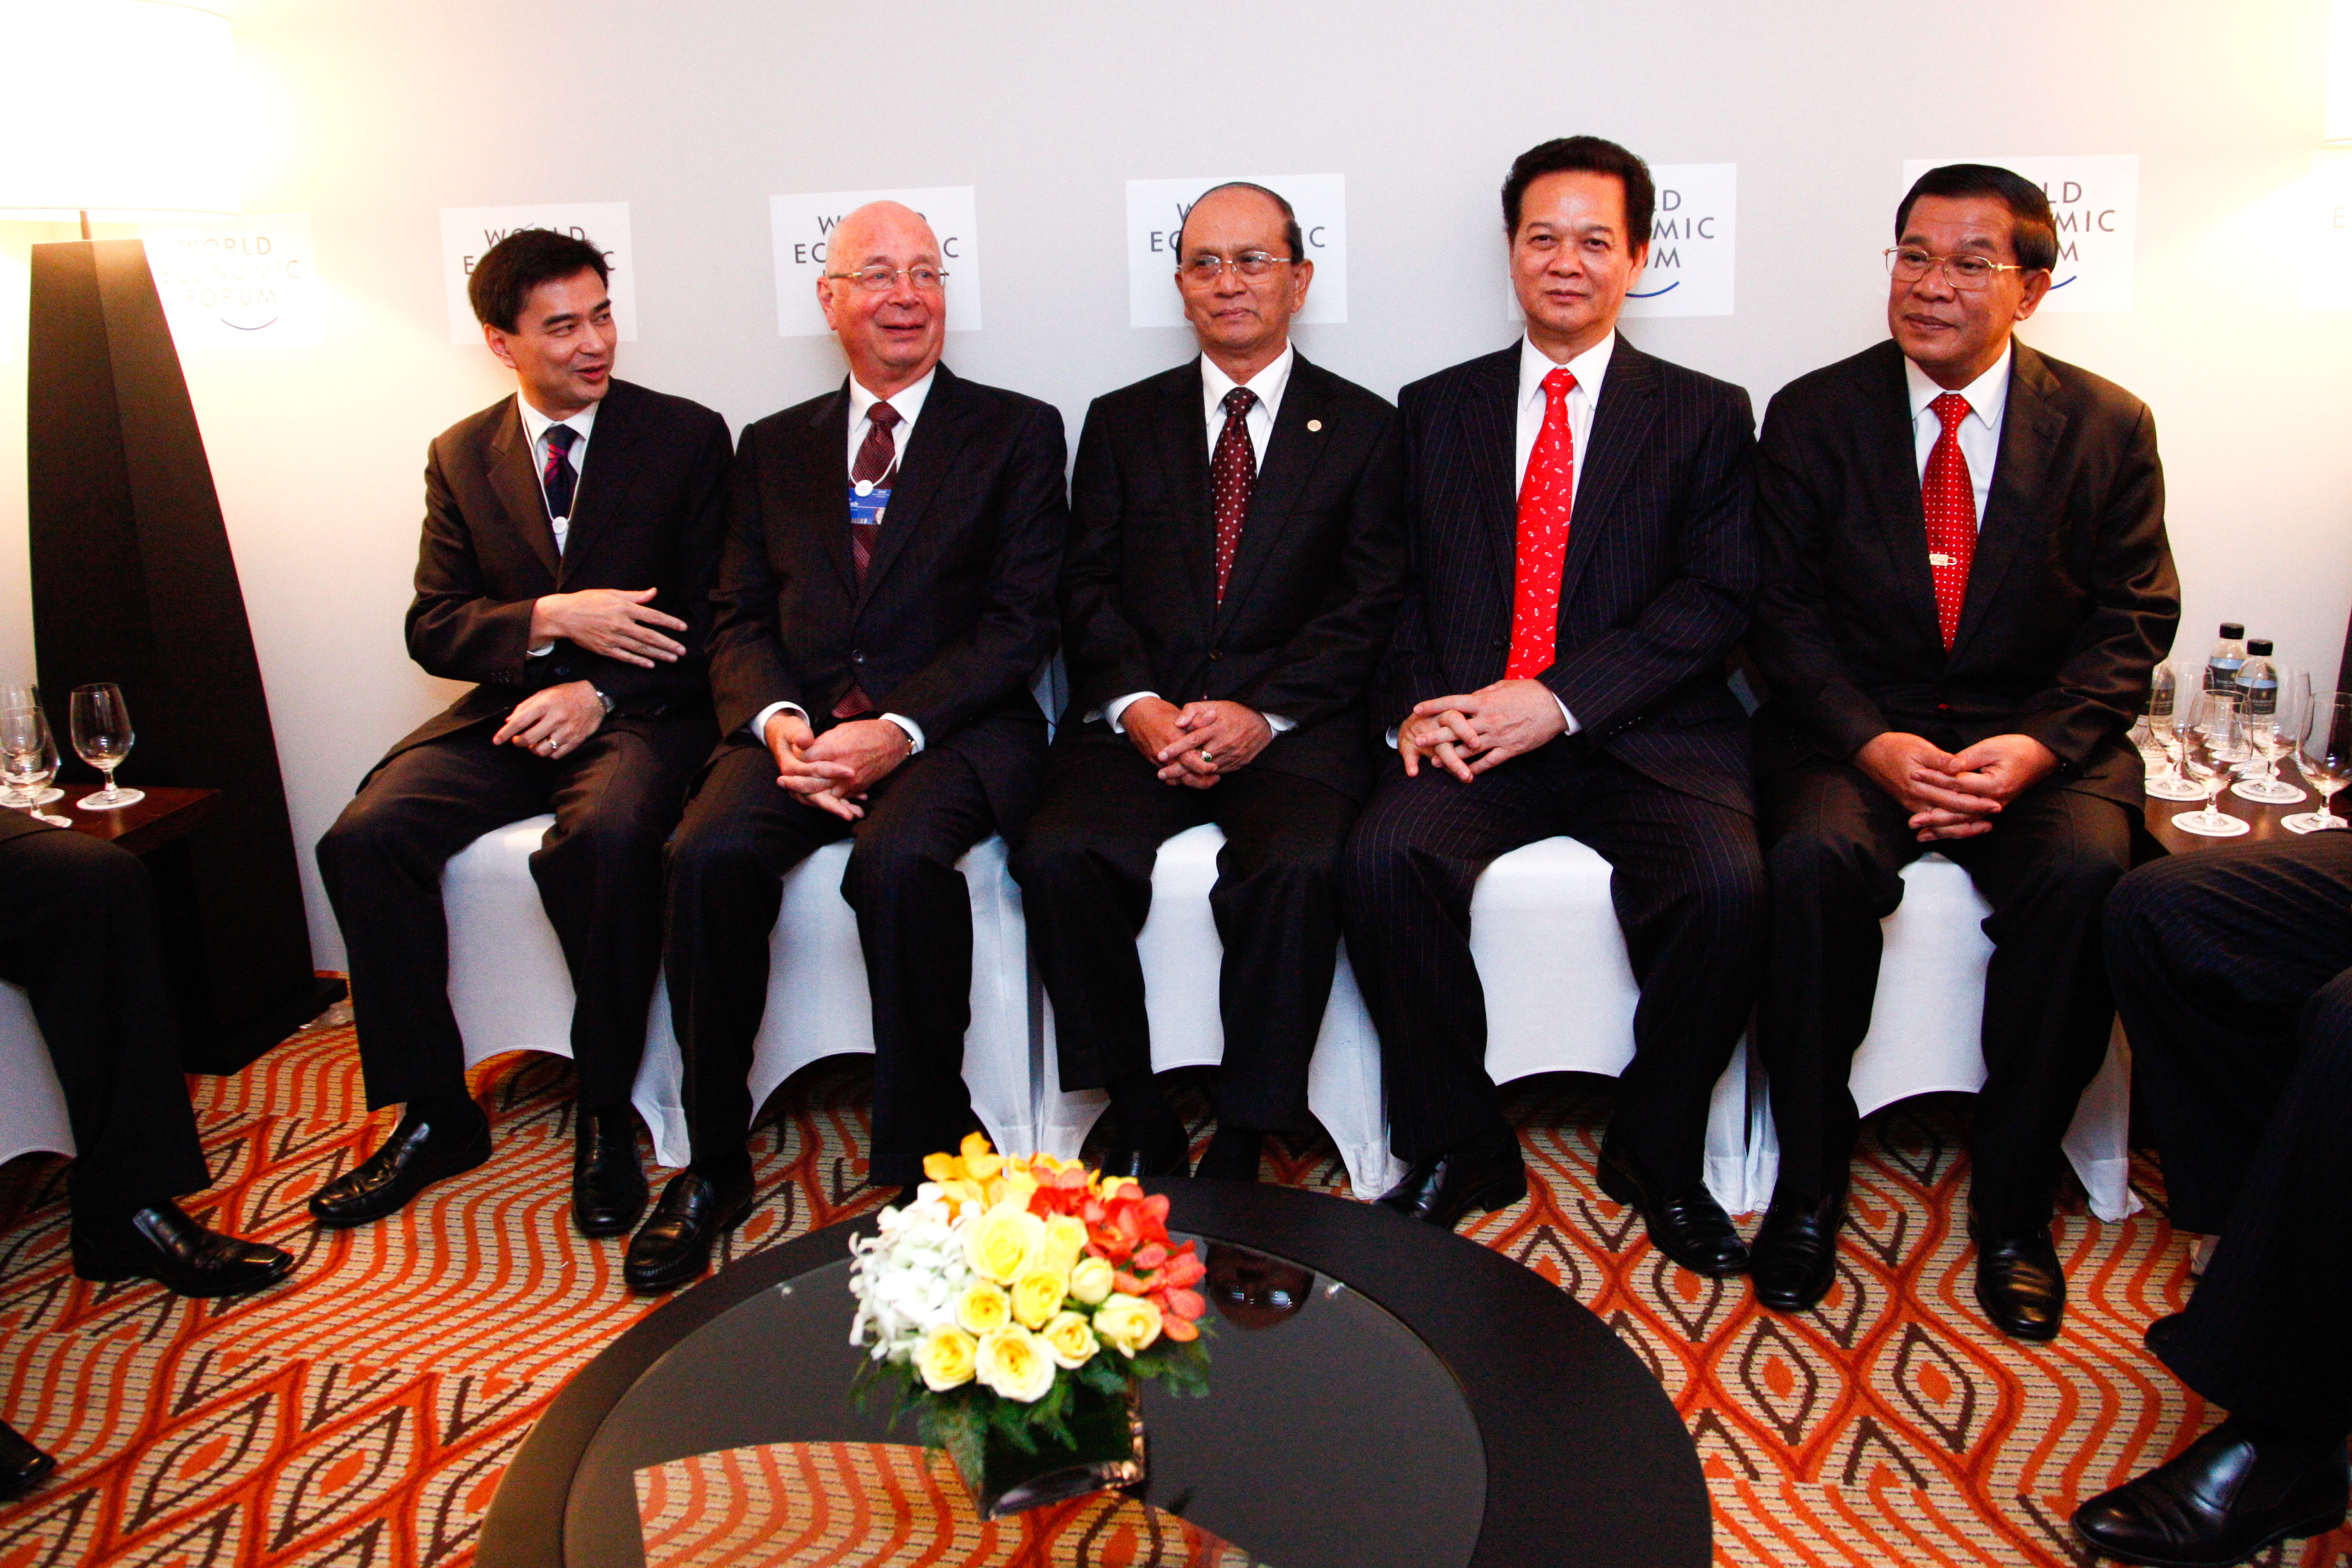 Abhisit Vejjajiva, Prime Minister of Thailand, Klaus Schwab, Executive Chairman, World Economic Forum, U Thein Sein, Prime Minister of Myanmar, Nguyen Tan Dung, Prime Minister of Vietnam, Samdech Techo Hun Sen, Prime Minister of Cambodia, sit together waiting for the Opening Ceremony